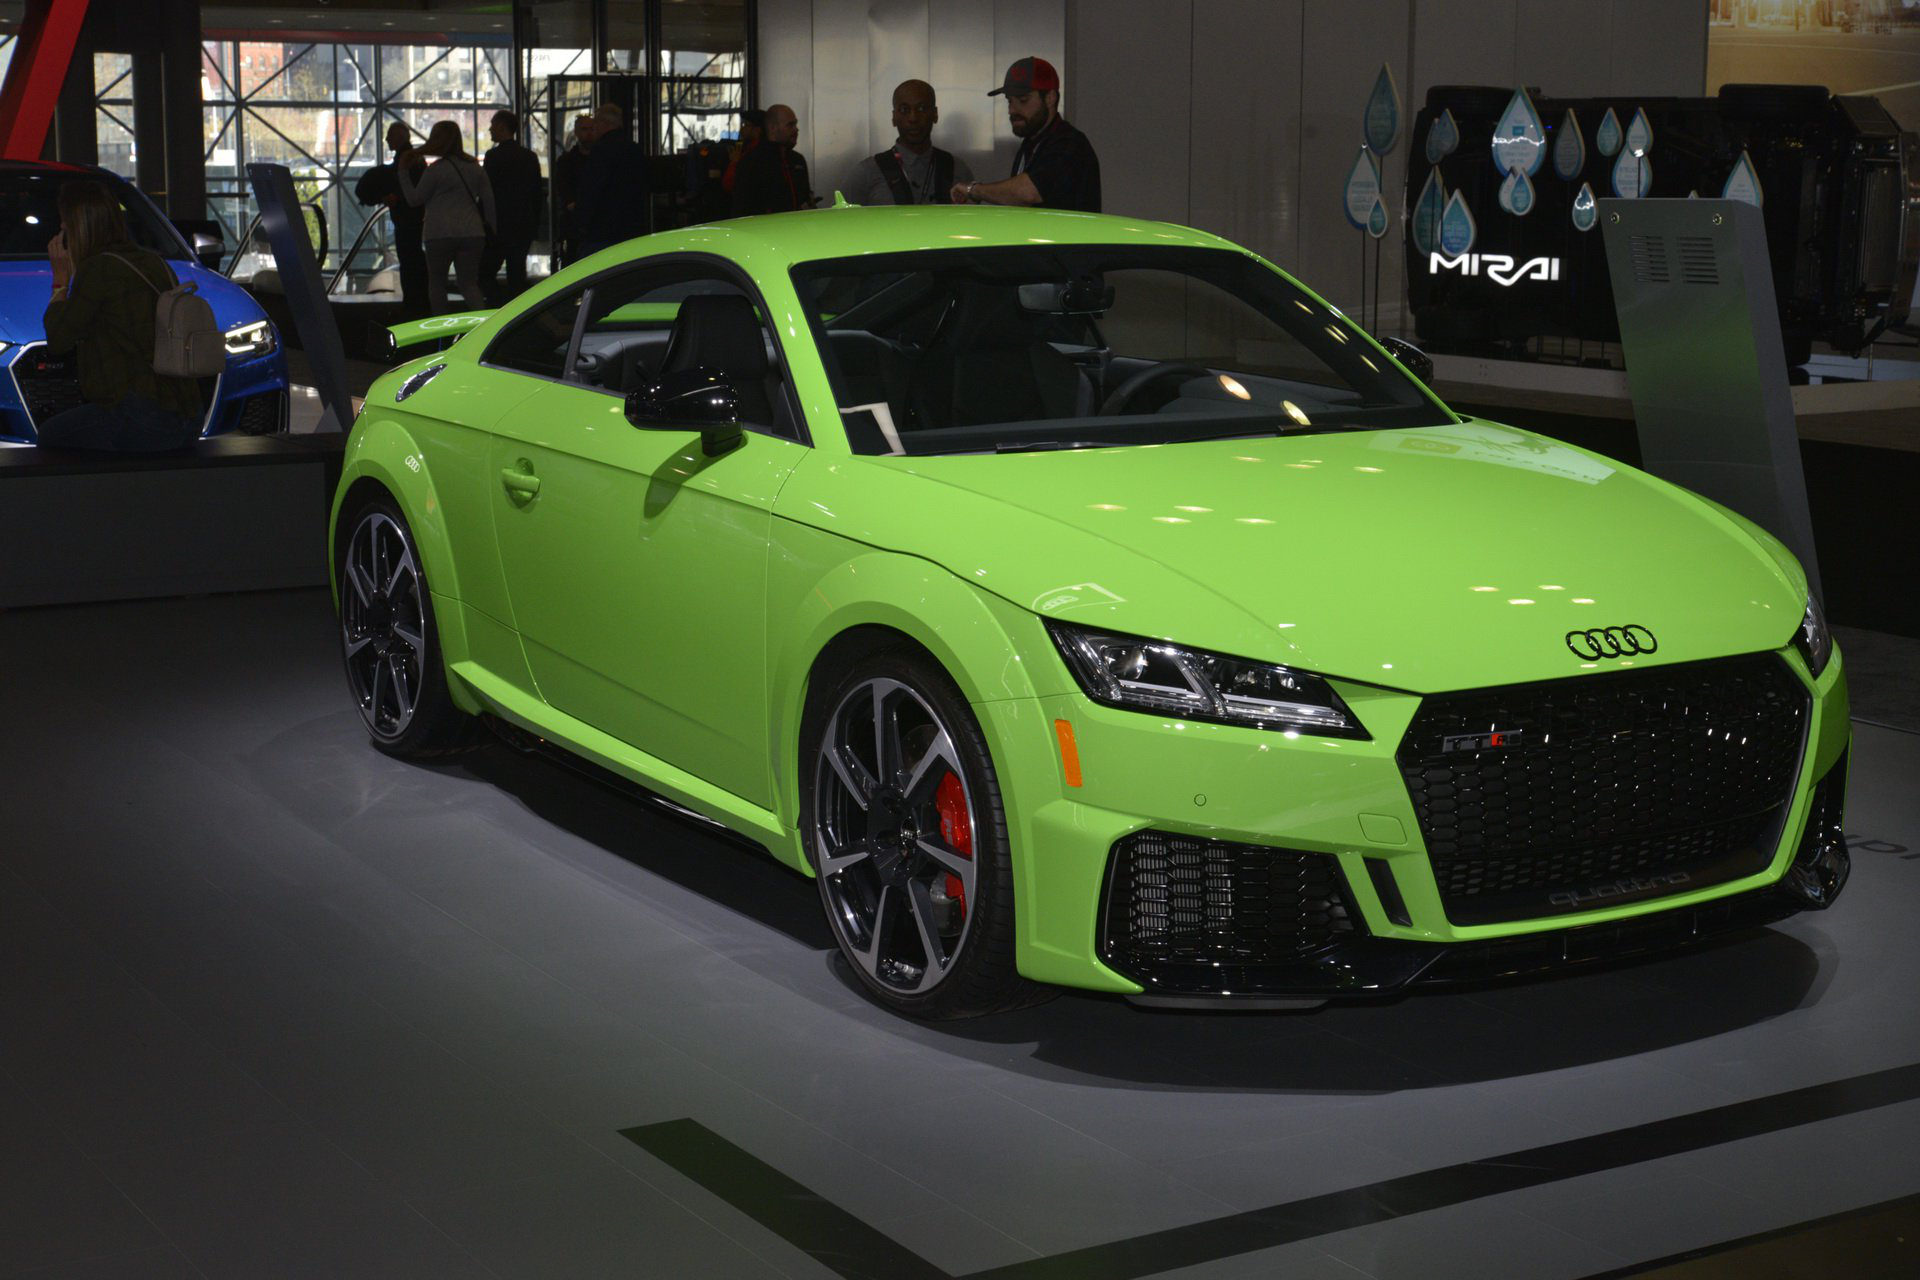 2020 Audi Tt Rs Is Ready To Put A Grin On Your Face Carmojo The 2020 Audi Tt Rs Is Priced From 67 895 In The U S As First Cars